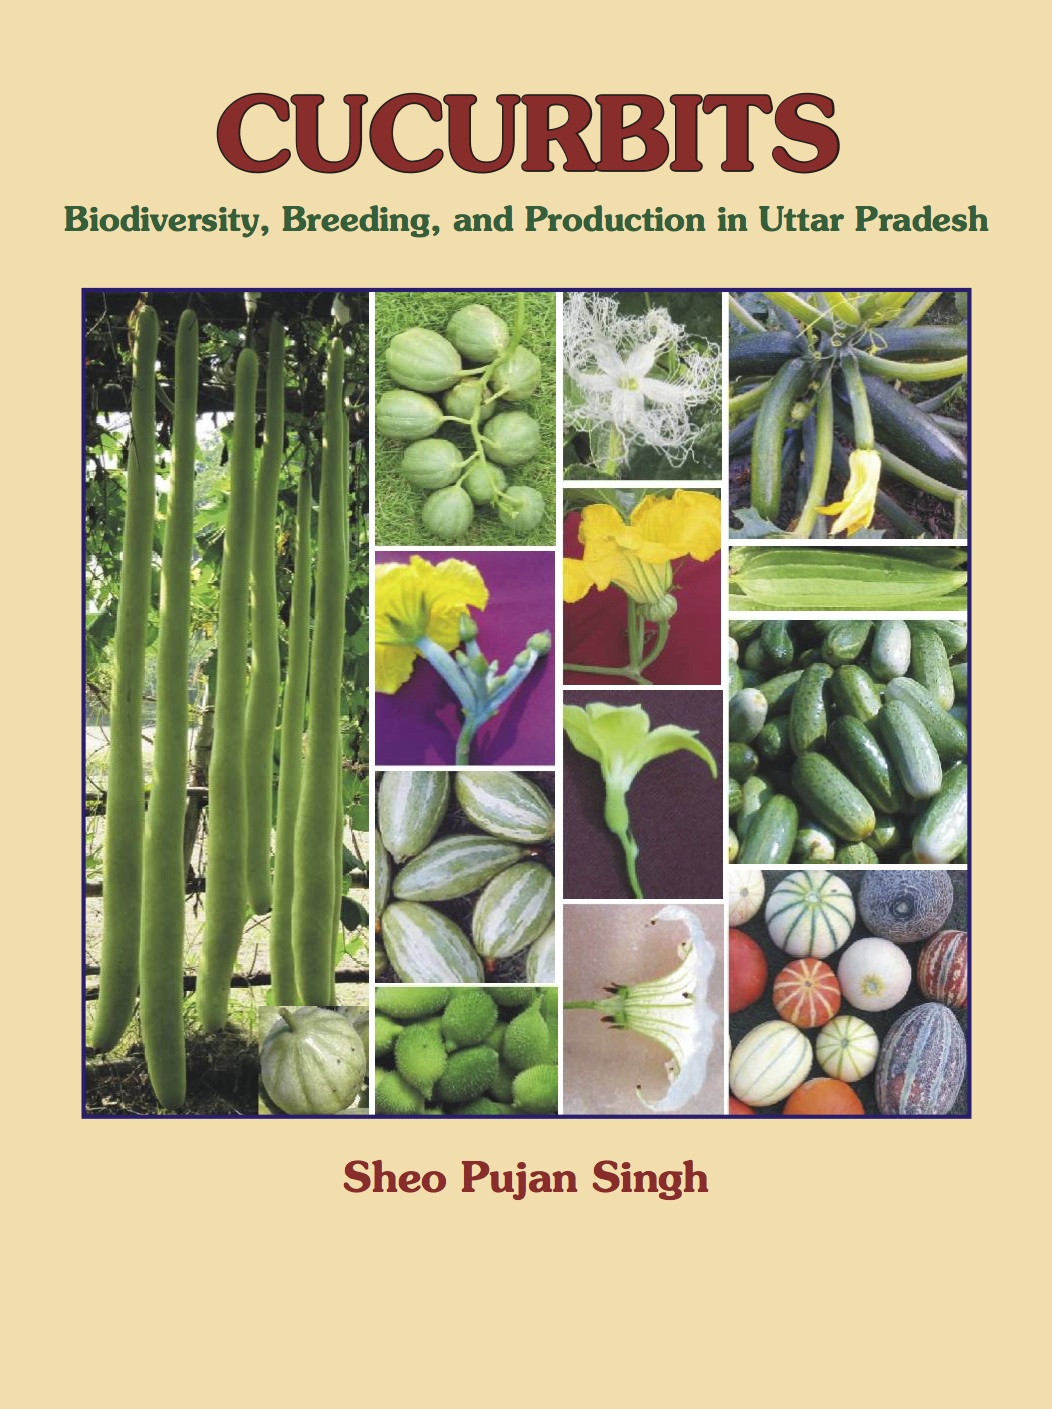 Curcurbits -Biodiversity, Breeding, and Production in Uttar Pradesh